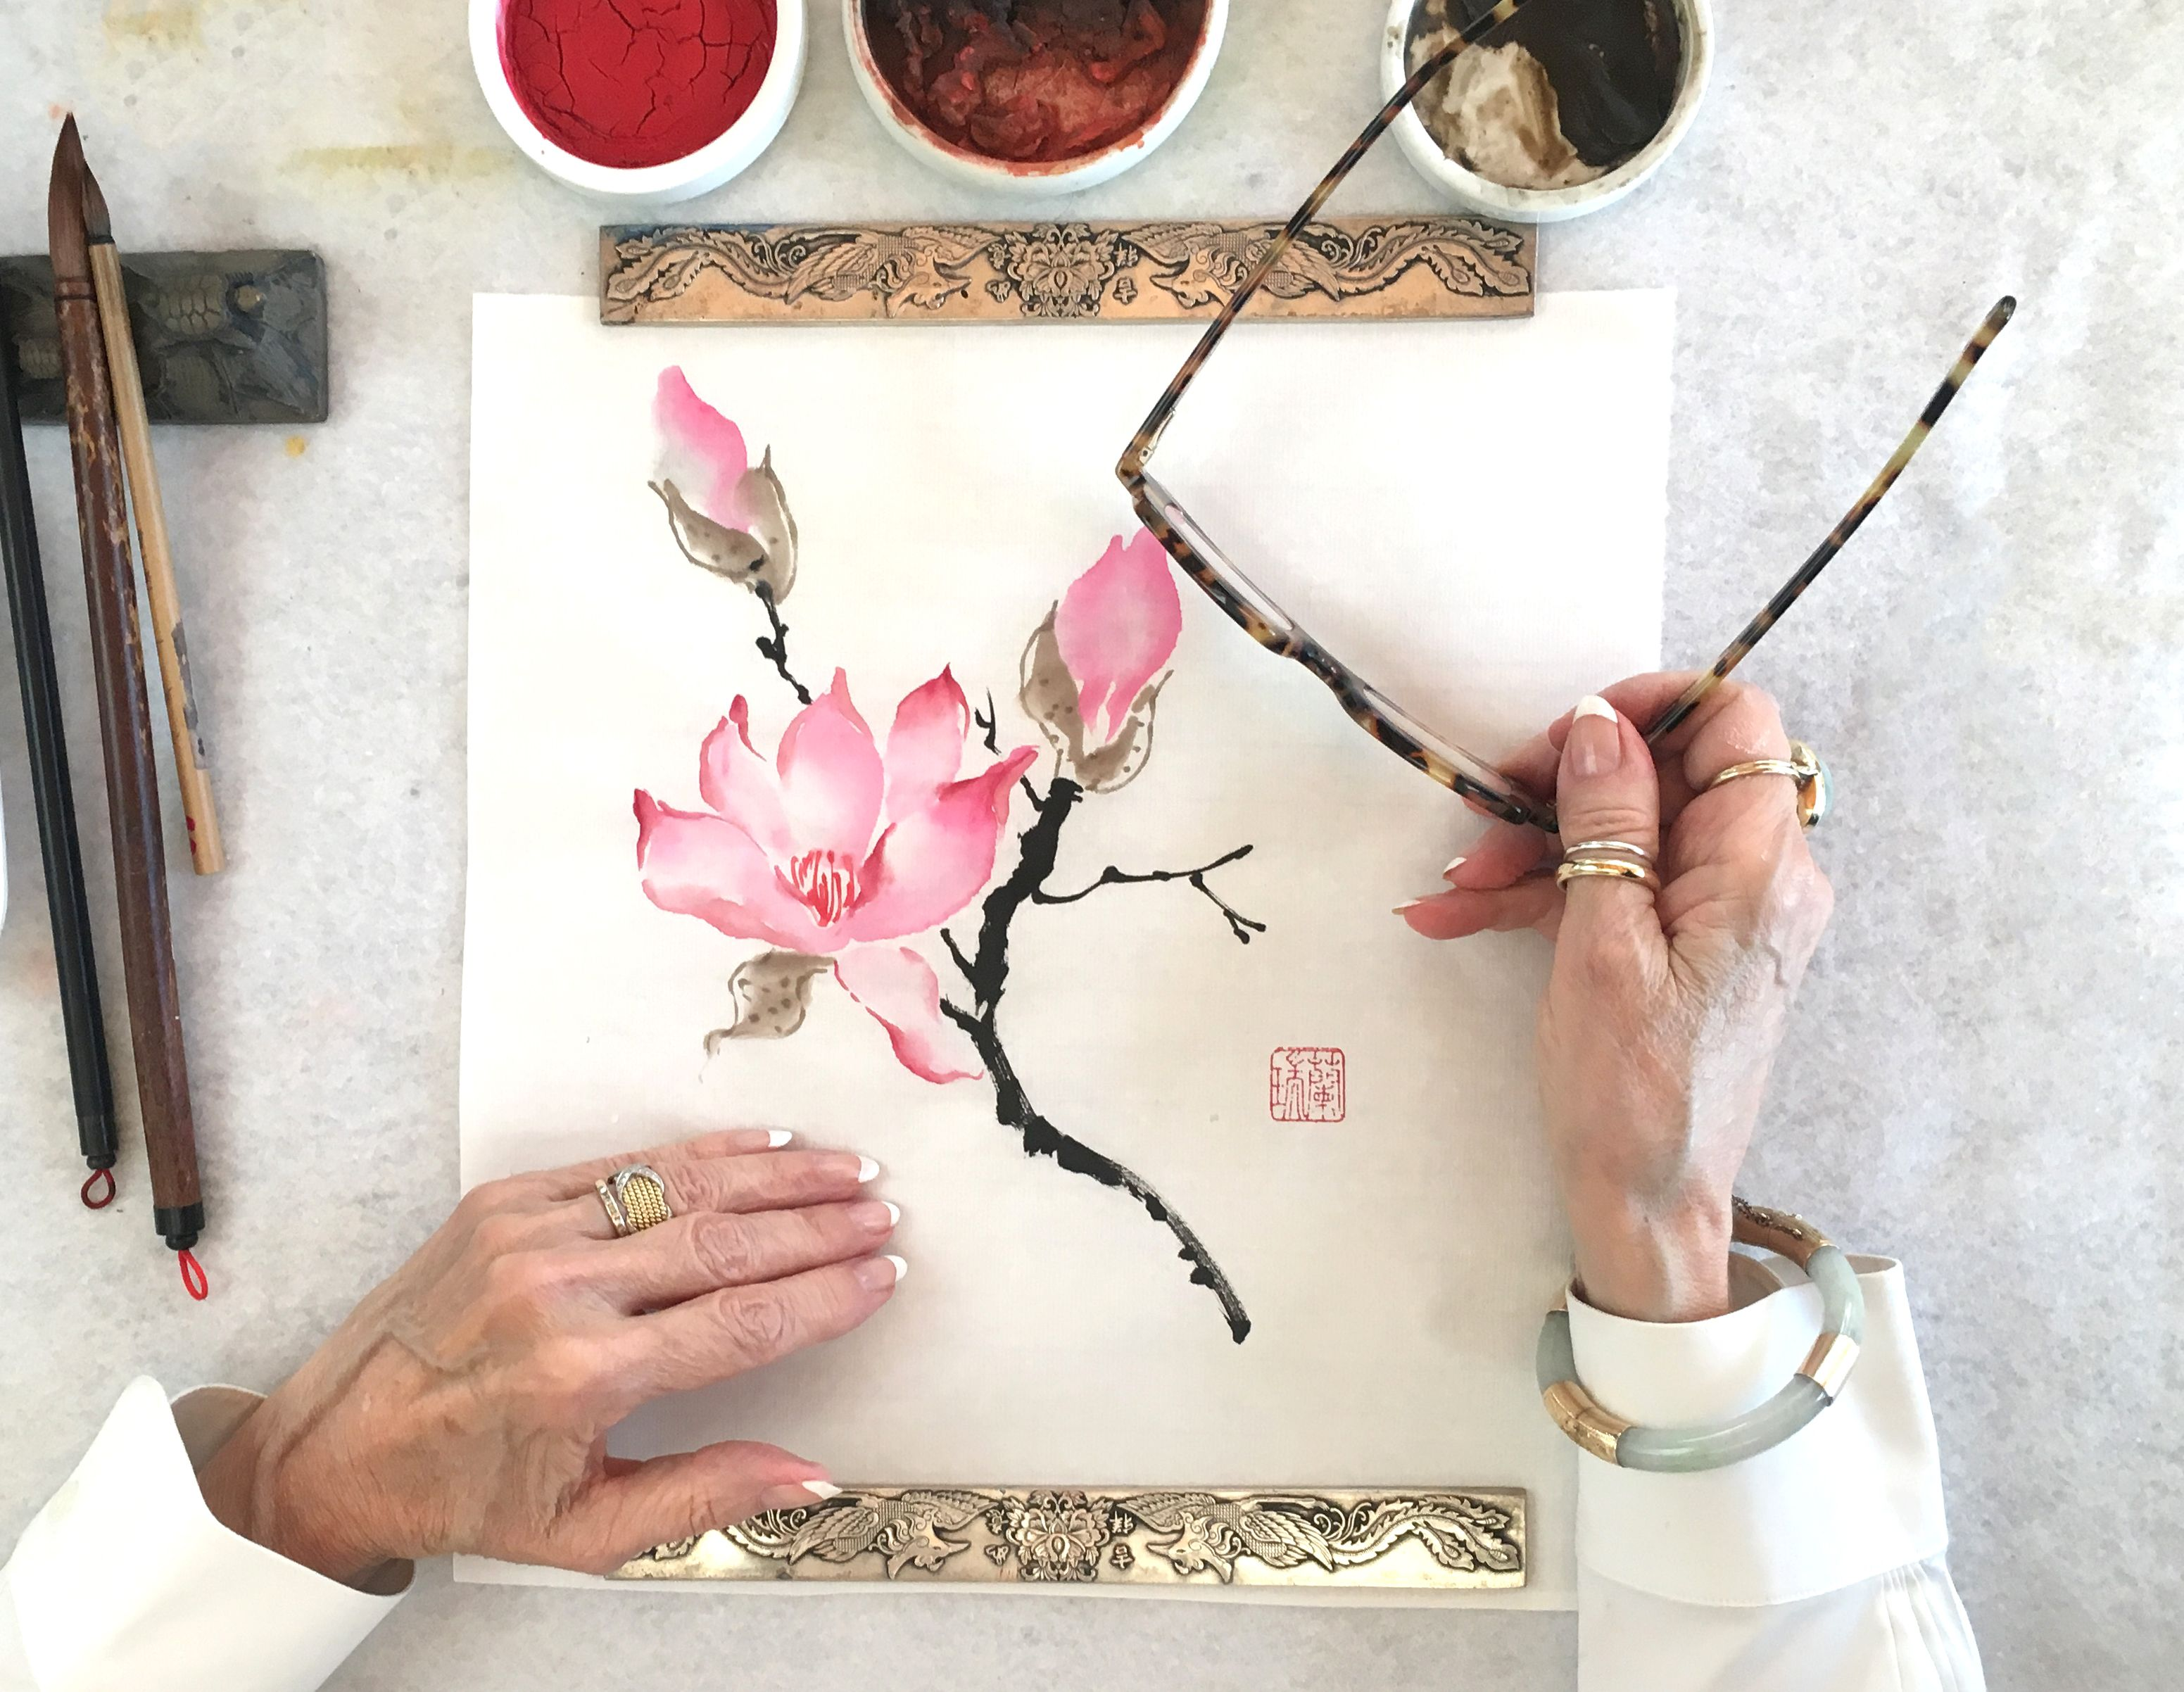 The Chinese Magnolia An Original Brush Painting By Nan Rae